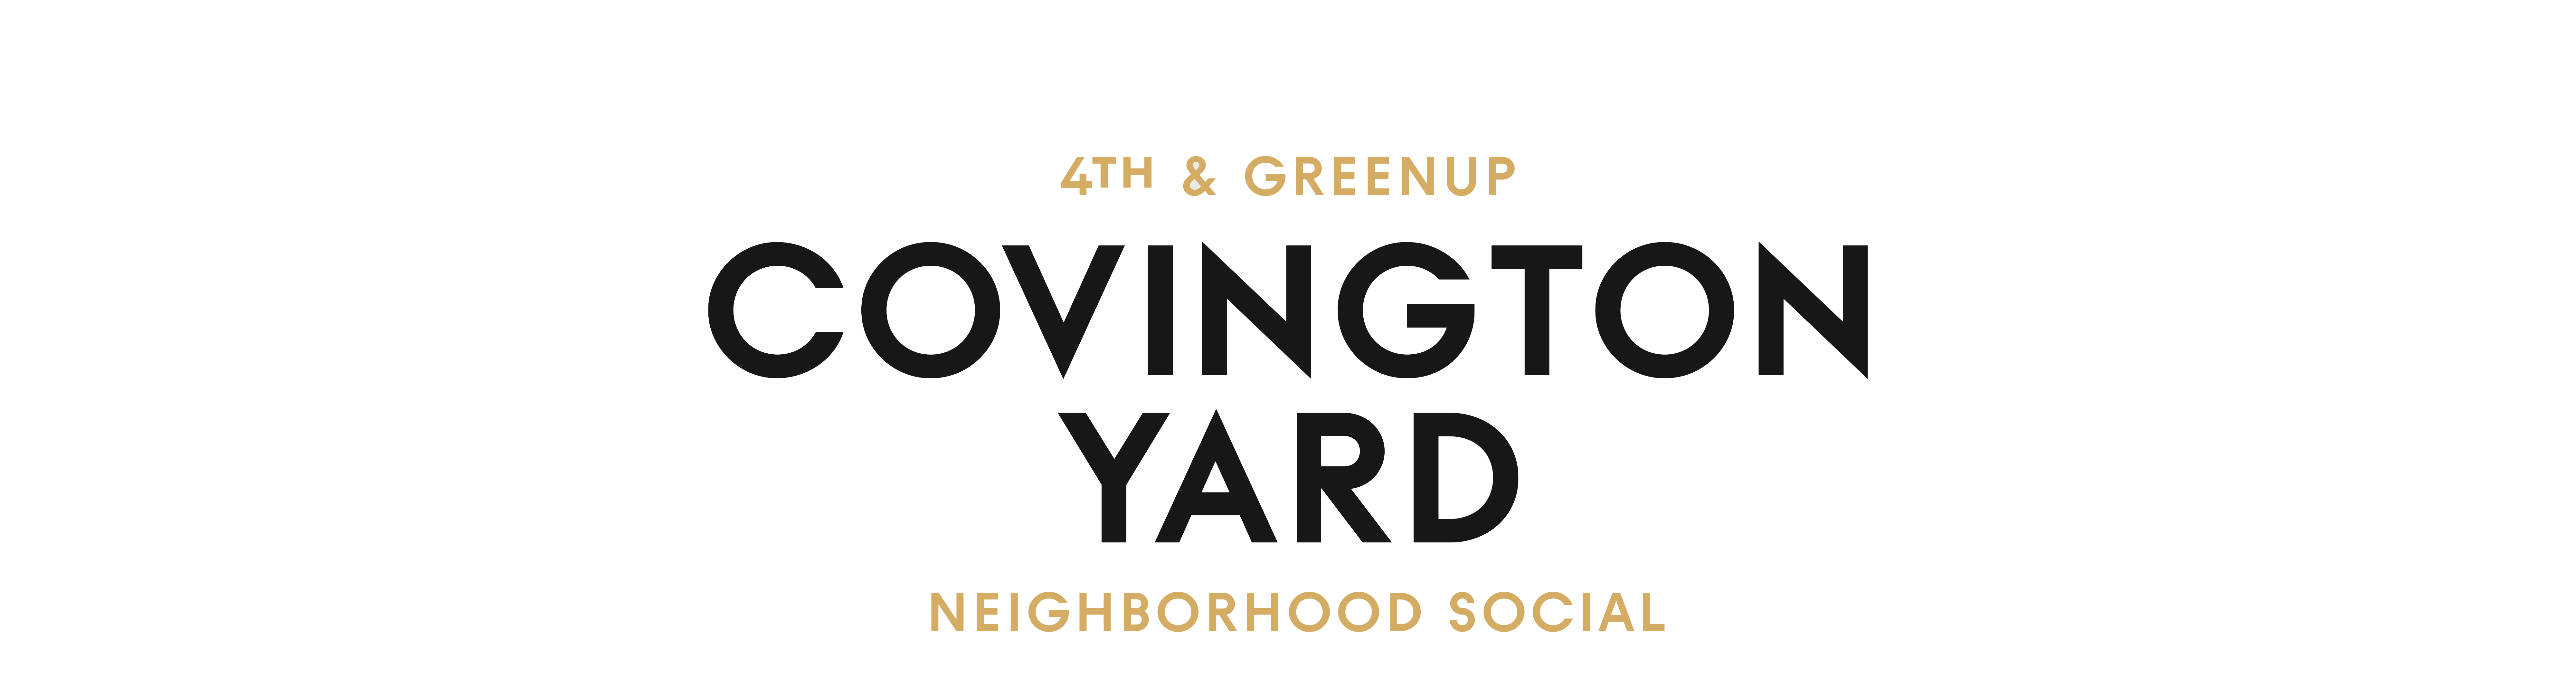 Covington Yard Bar & Food Container Park | Neighborhood Social in Covington, Kentucky